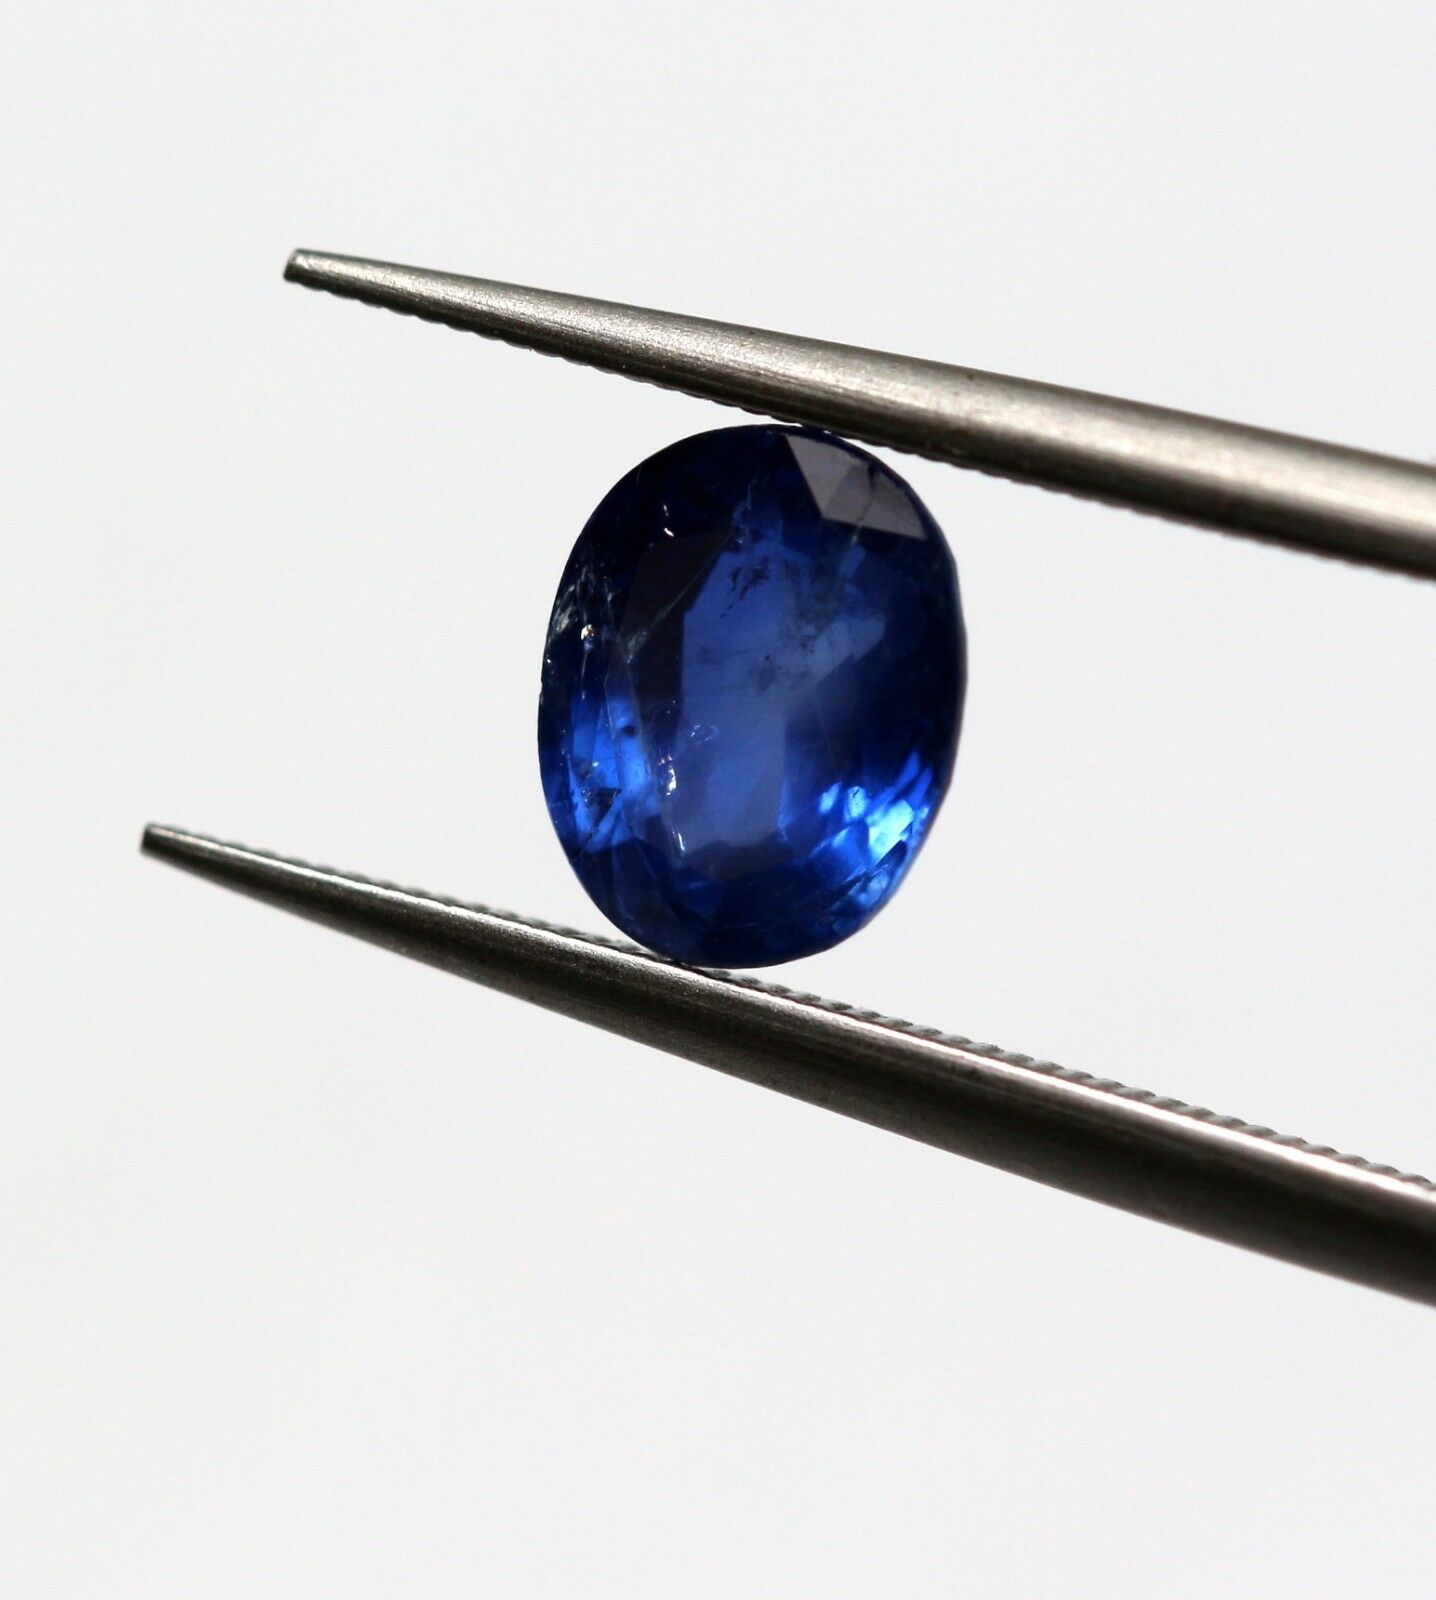 0.96 Ct Blue Sapphire Natural Gemstone Oval Cut Thailand Dark Blue Color Certified